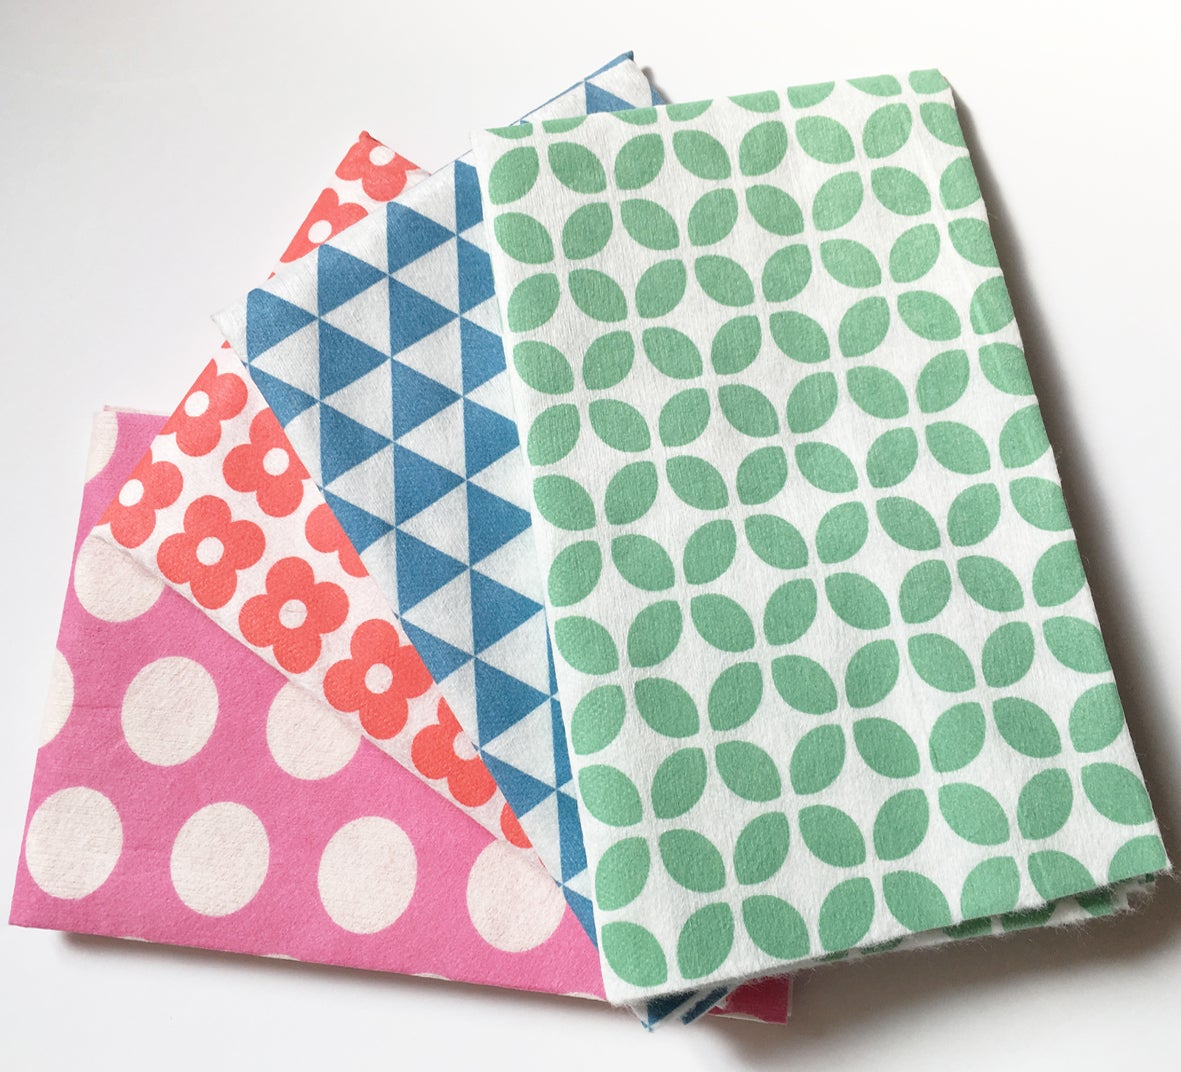 Image of Mixed Pattern Ultra Absorbent Cloths - 16 loose cloths (4Red + 4Blue + 4Green +4Pink) ***NEW***